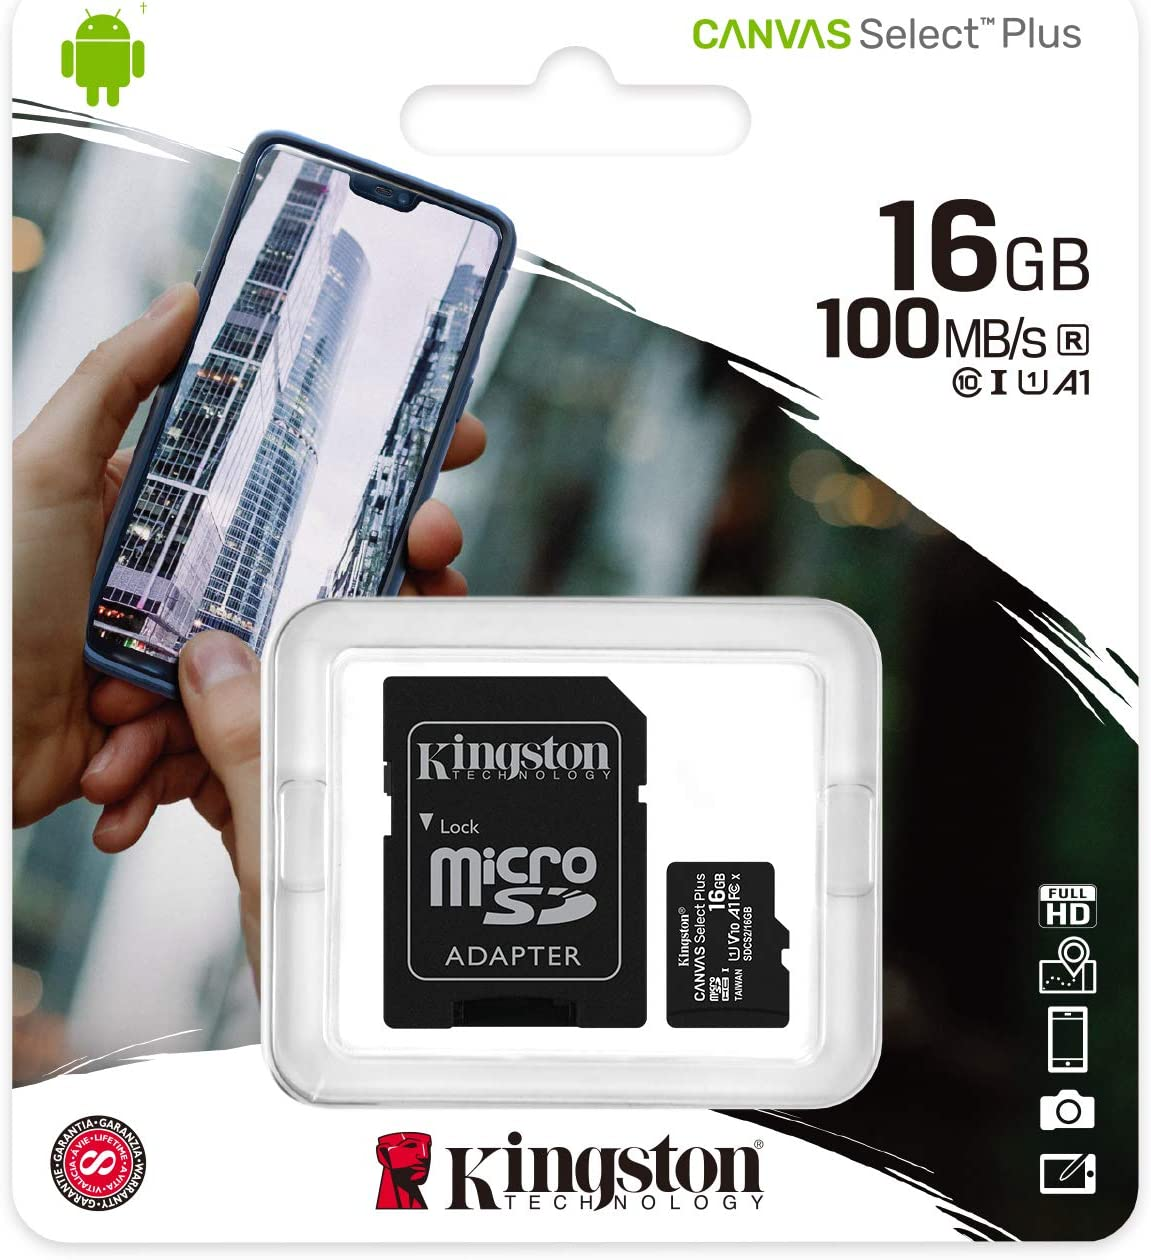 Professional Kingston 16GB MicroSDHC Card for Archos 97b Platinum HD Tablet with custom formatting and Standard SD Adapter. . Class 4